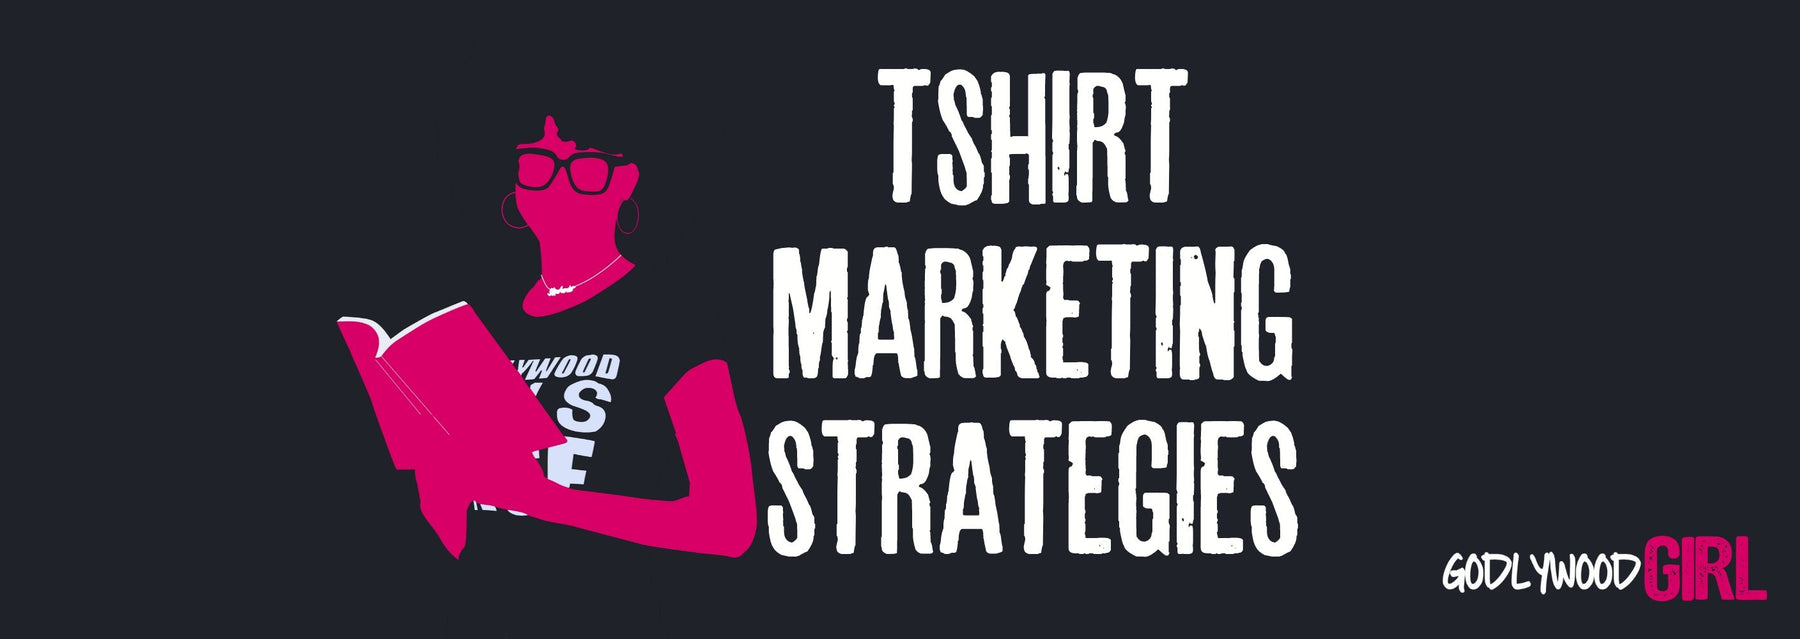 T SHIRT MARKETING STRATEGIES (POWERFUL Instagram Marketing Tips For Clothing Brands) || HOW TO